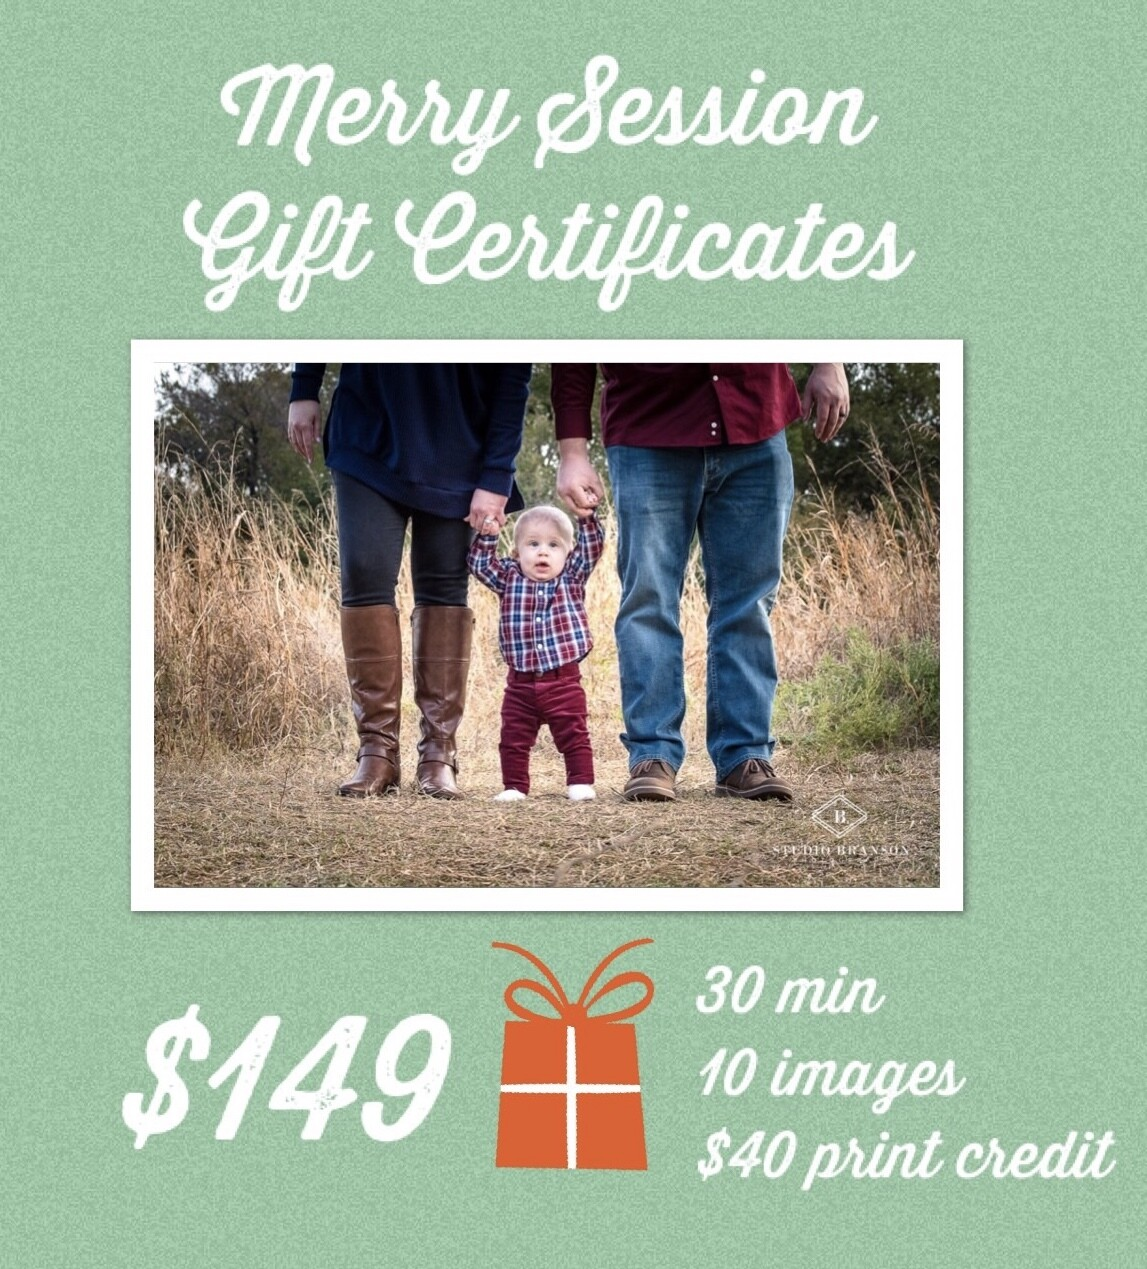 Merry Family Session Gift Certificate